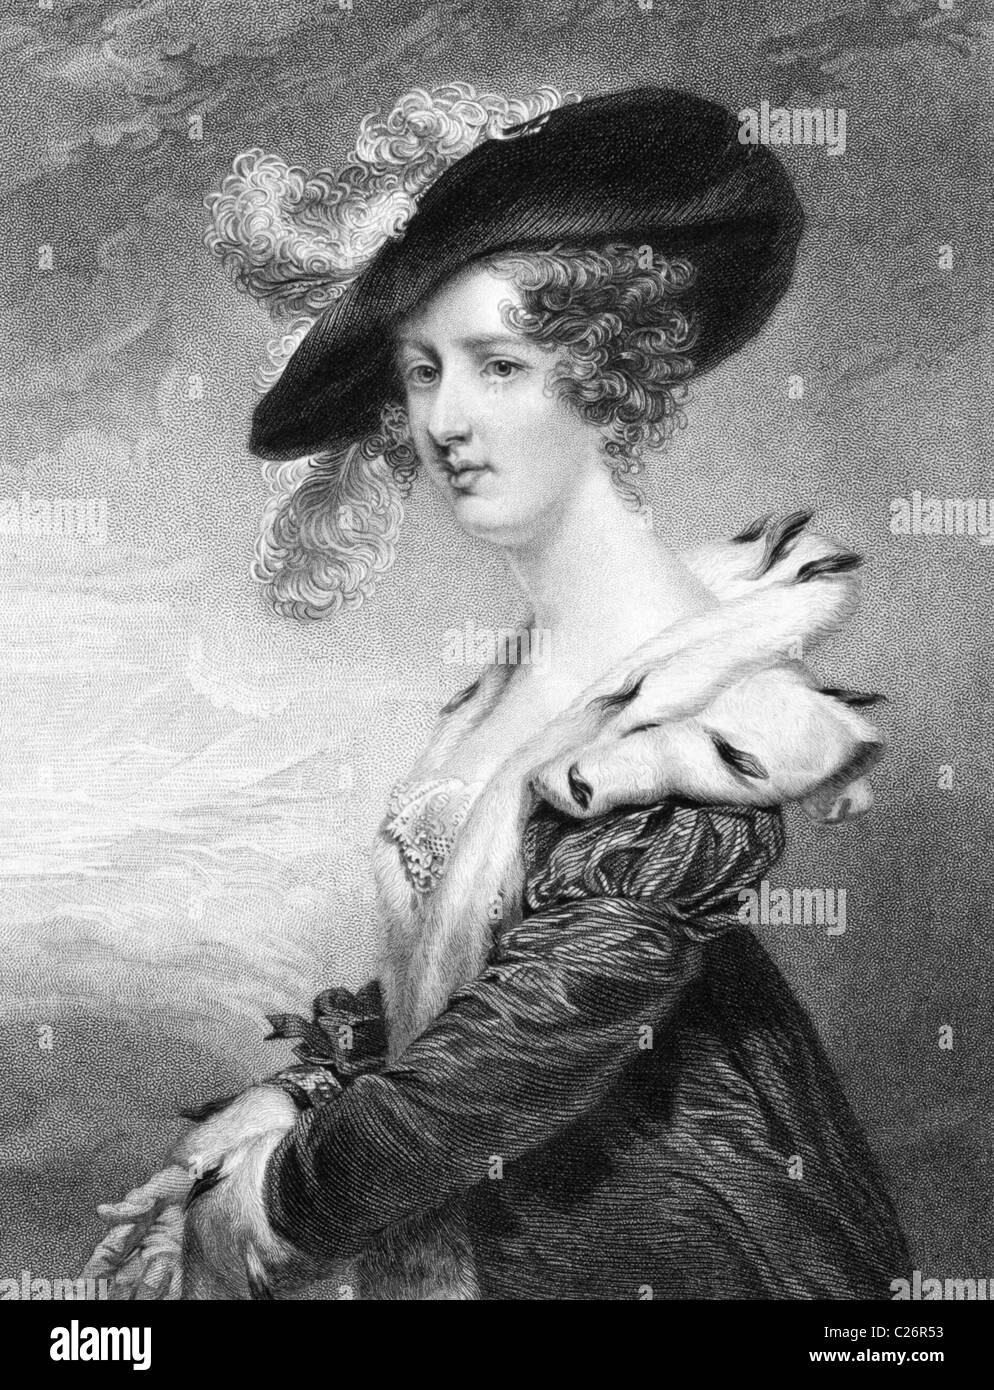 Georgiana Dowager, Lady Dover on engraving from 1840. - Stock Image